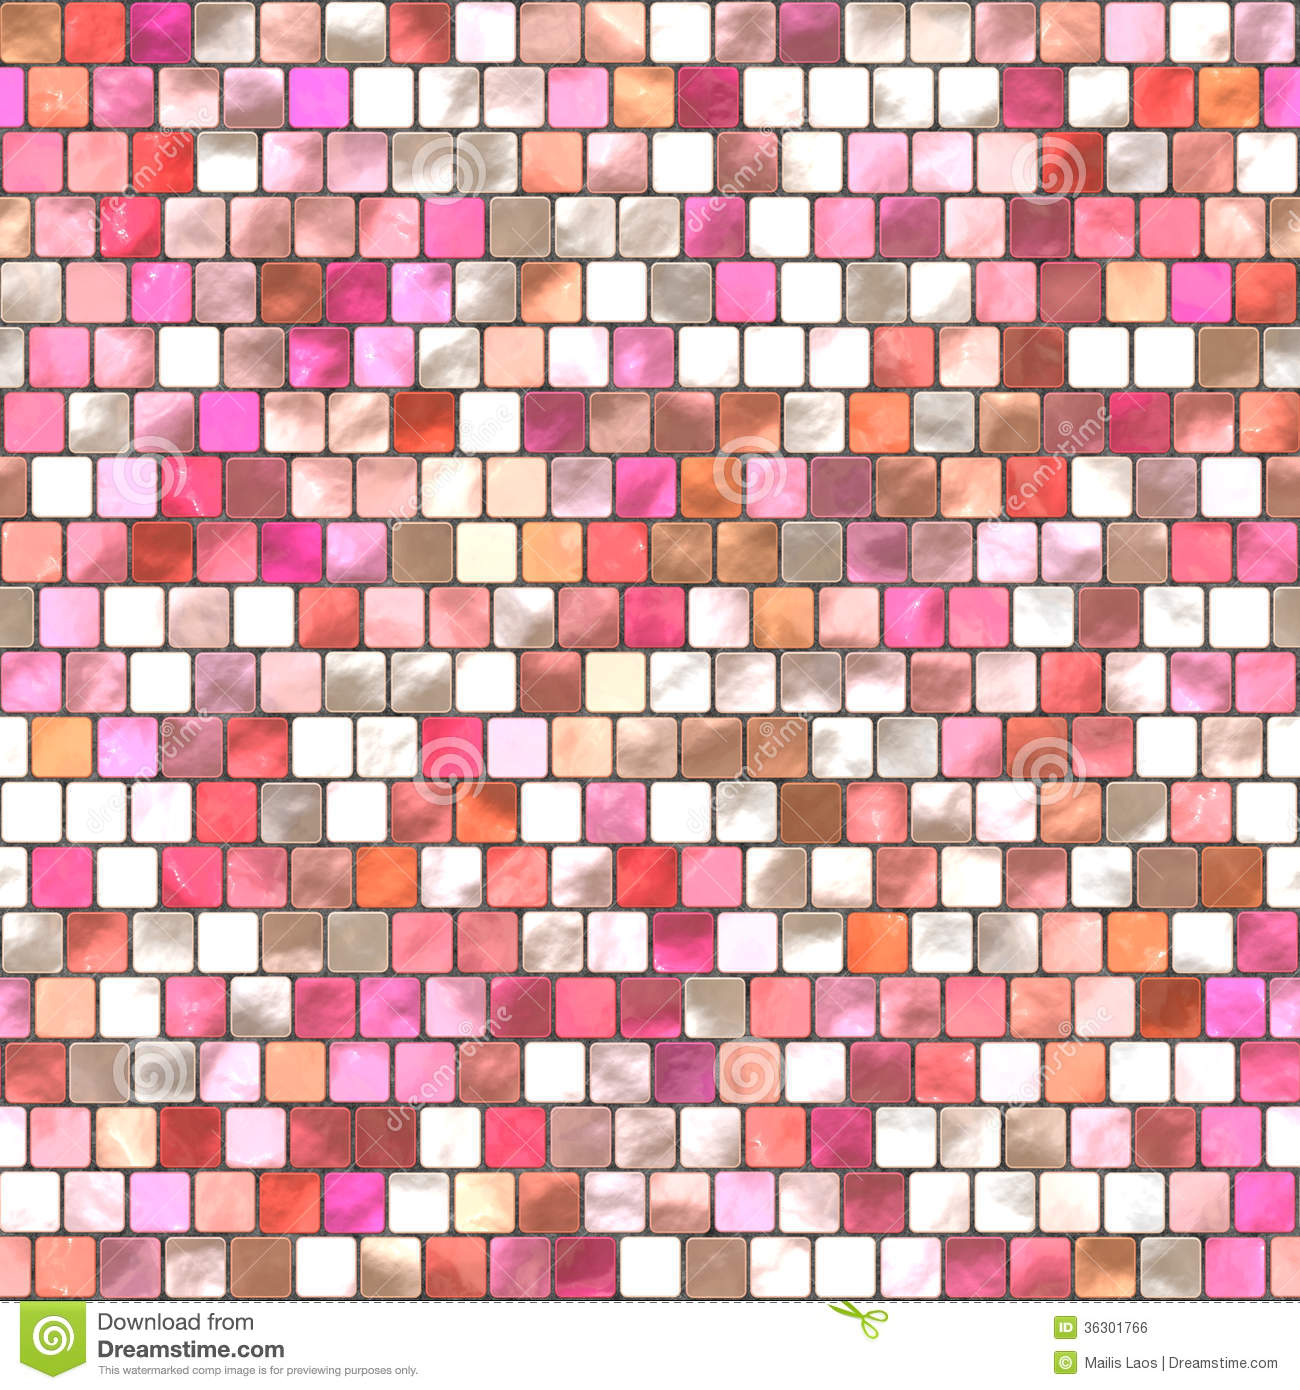 Carrelage rose de mosa que image libre de droits image for Carrelage mosaique rose